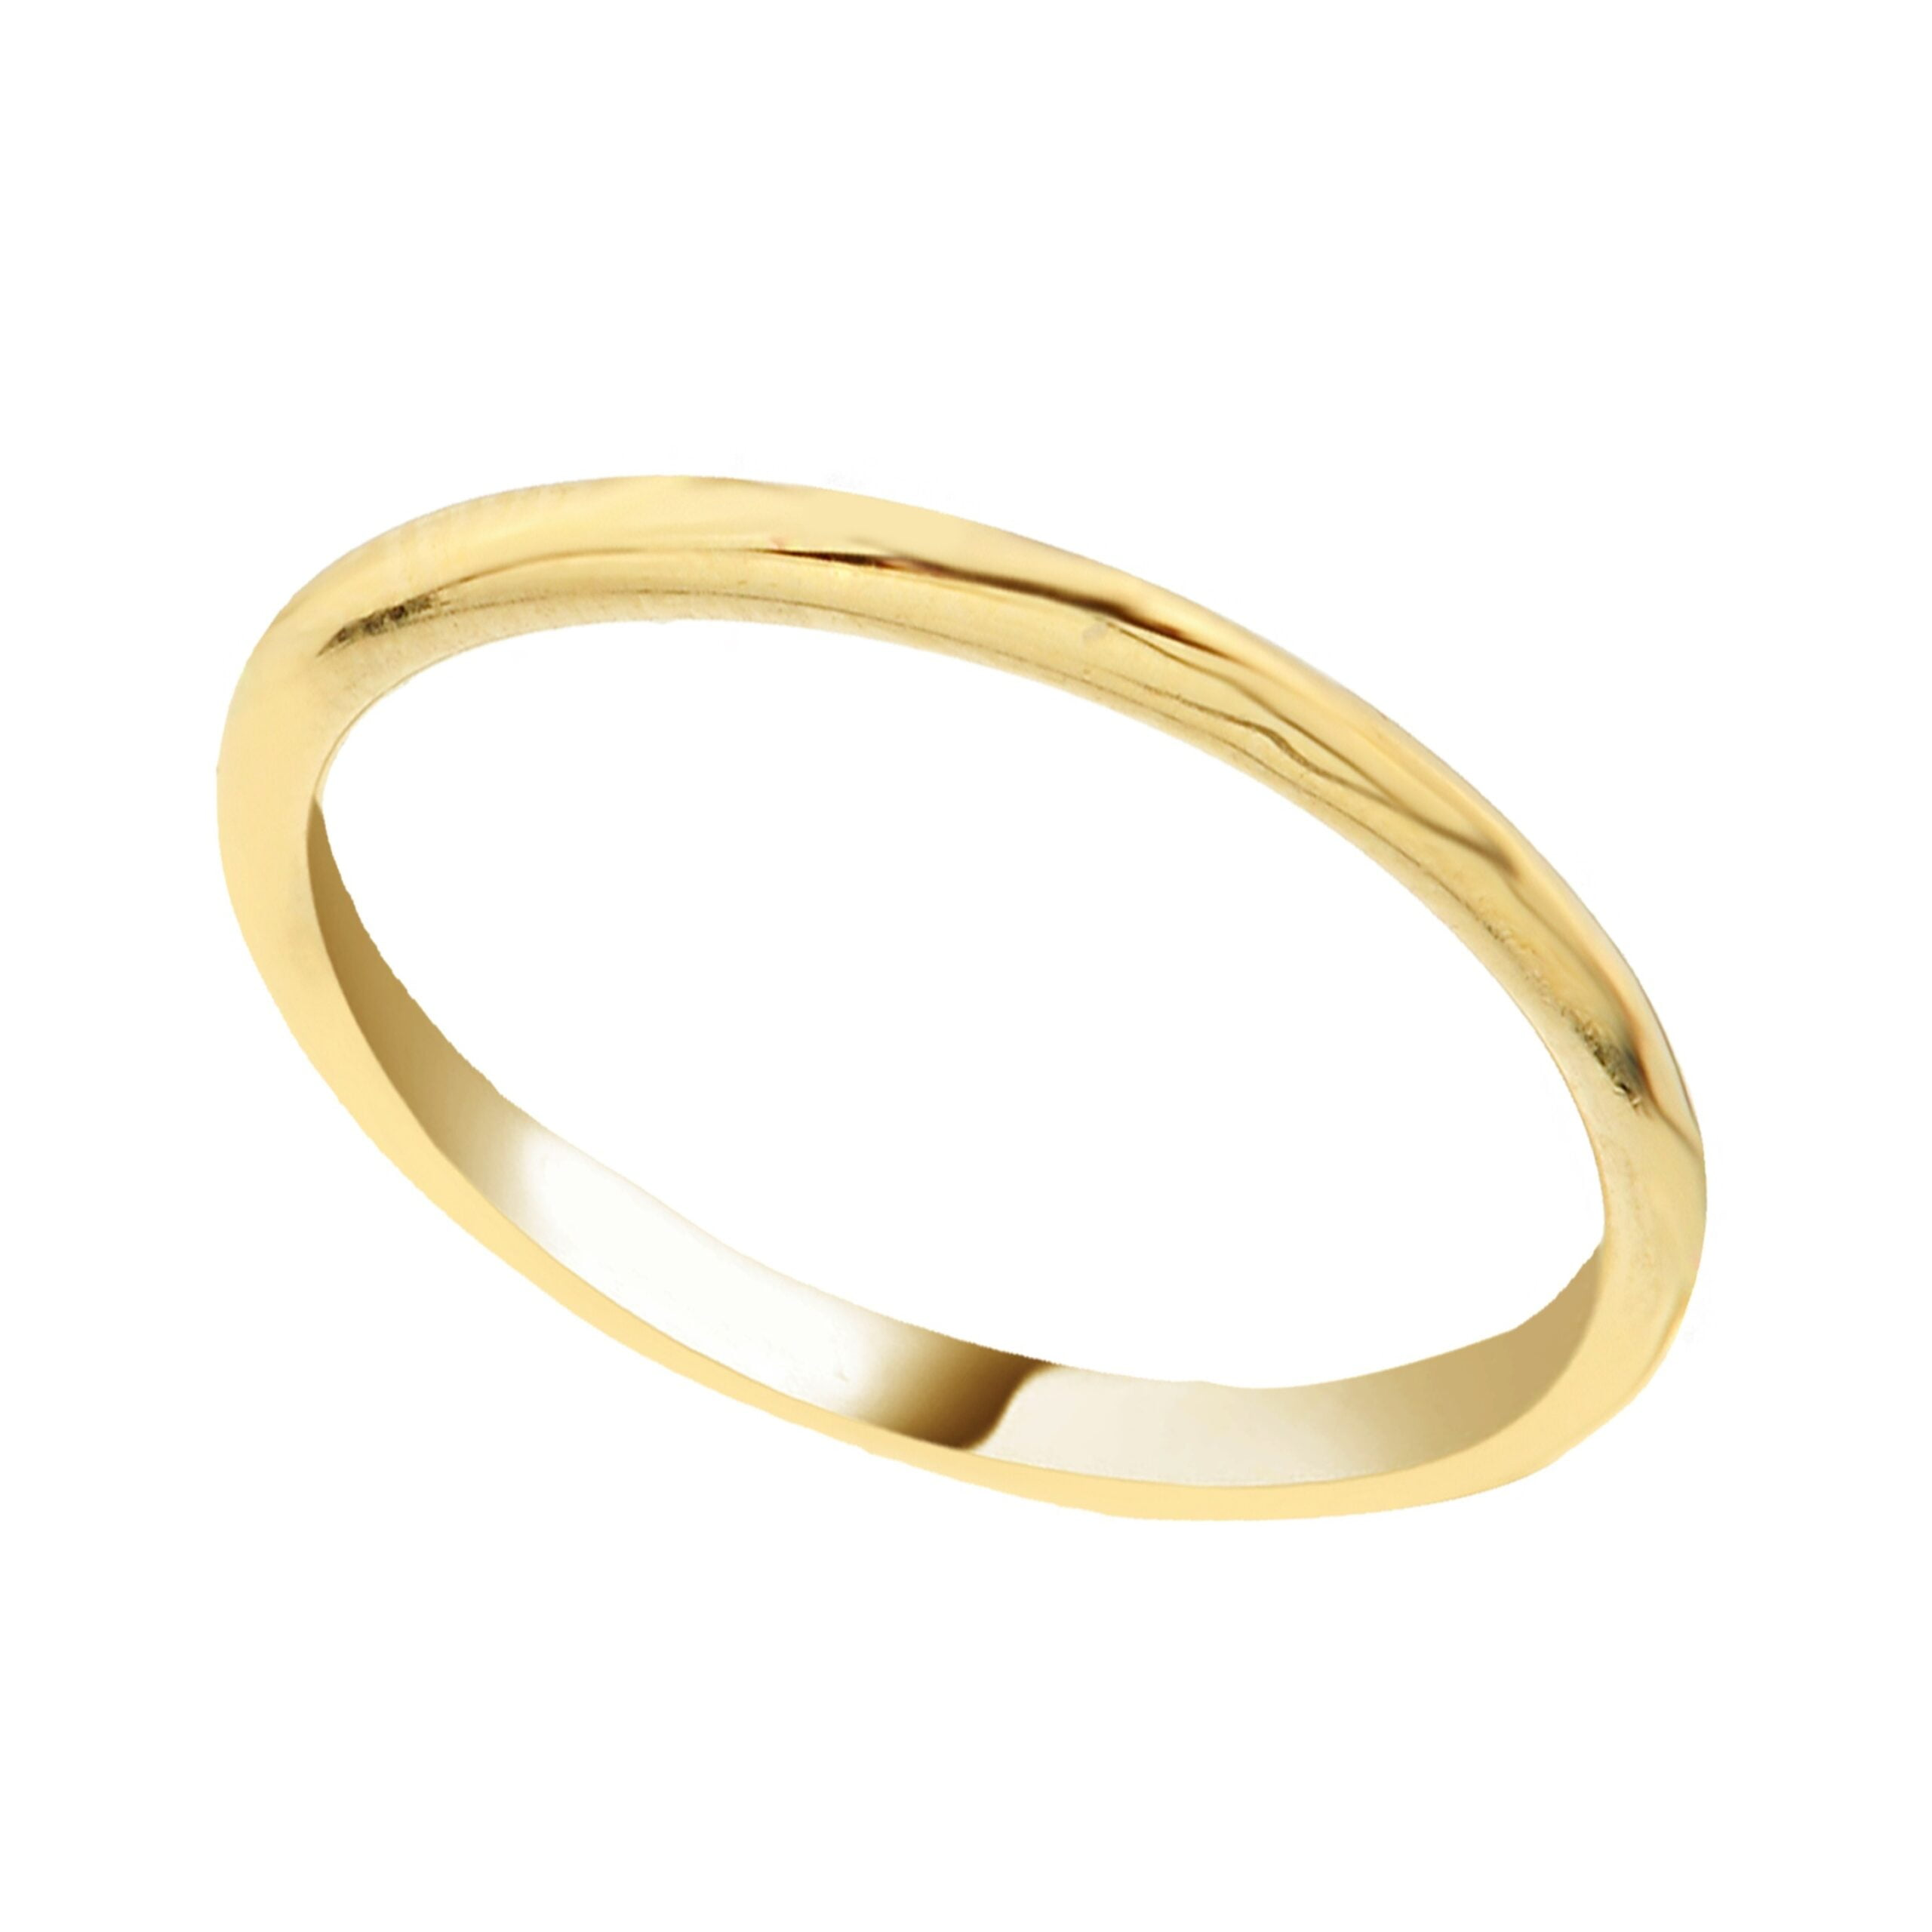 14K Real Yellow Solid Gold Thin Plain Band Polished Ring Simple Finger Stacking Knuckle For Women Christmas Gift Birthday Xmas Wedding her mother girl